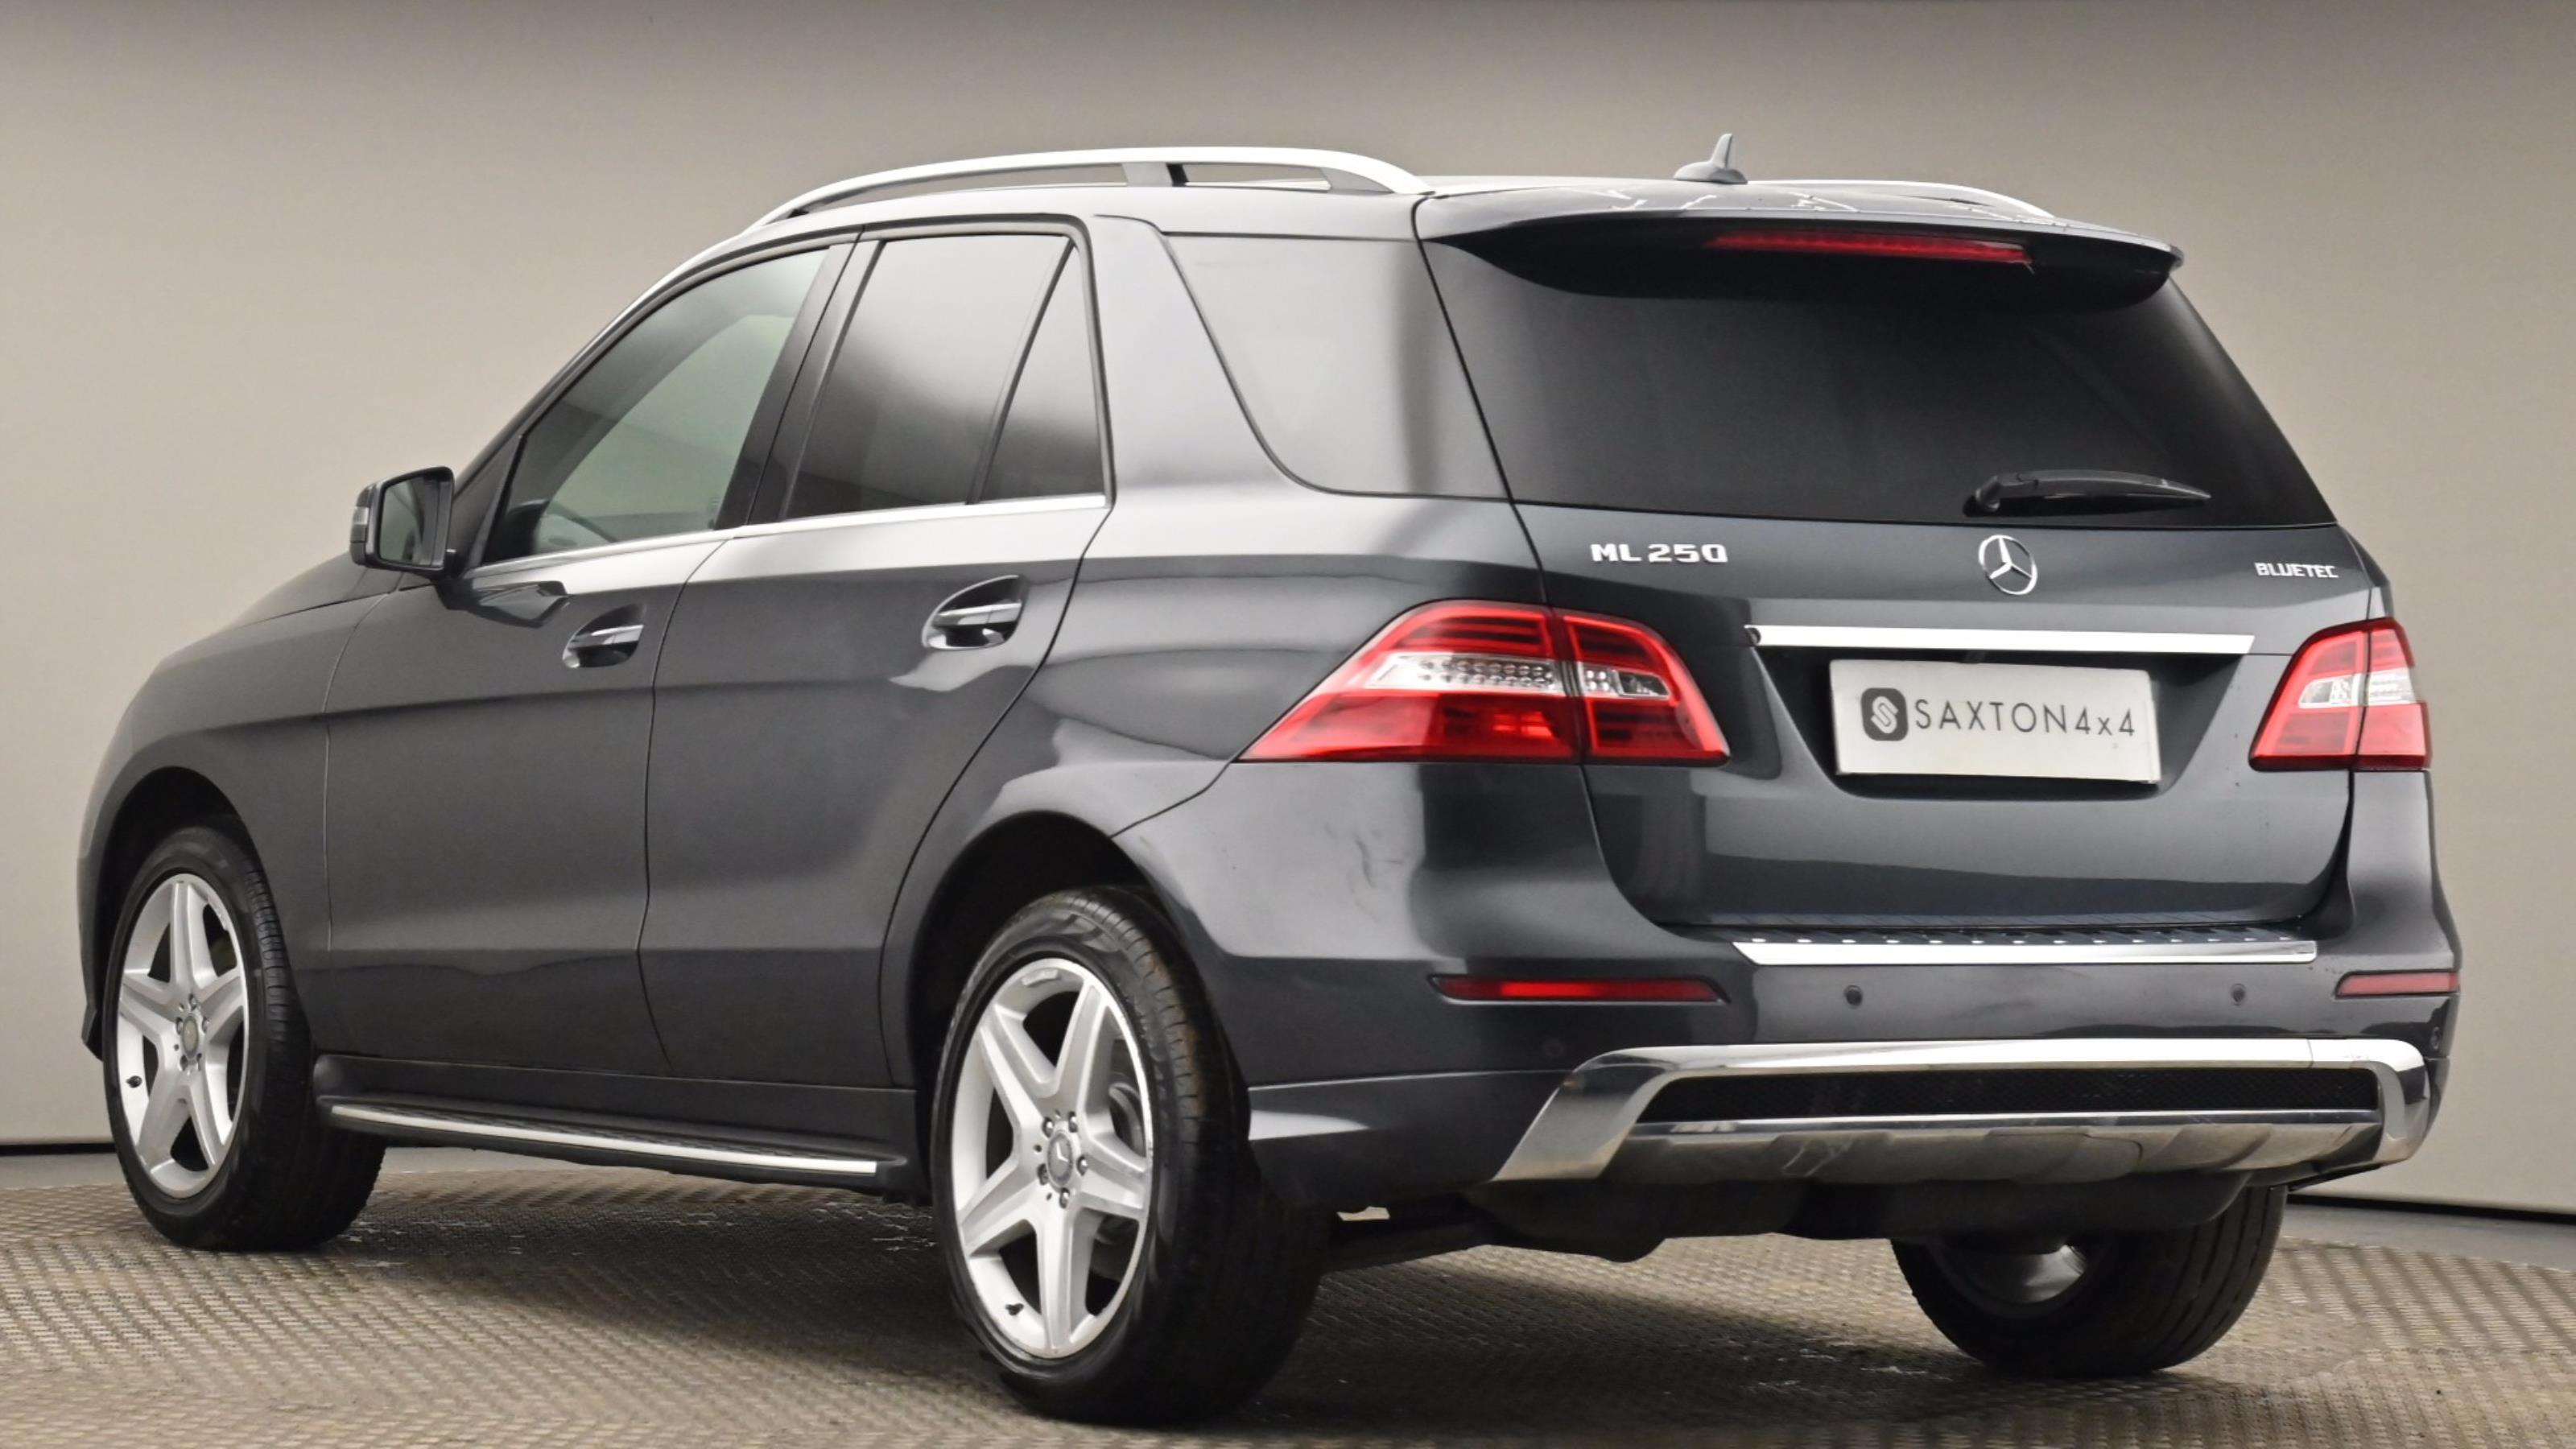 Used 15 Mercedes-Benz M CLASS ML250 CDi BlueTEC AMG Line 5dr Auto [Premium] GREY at Saxton4x4